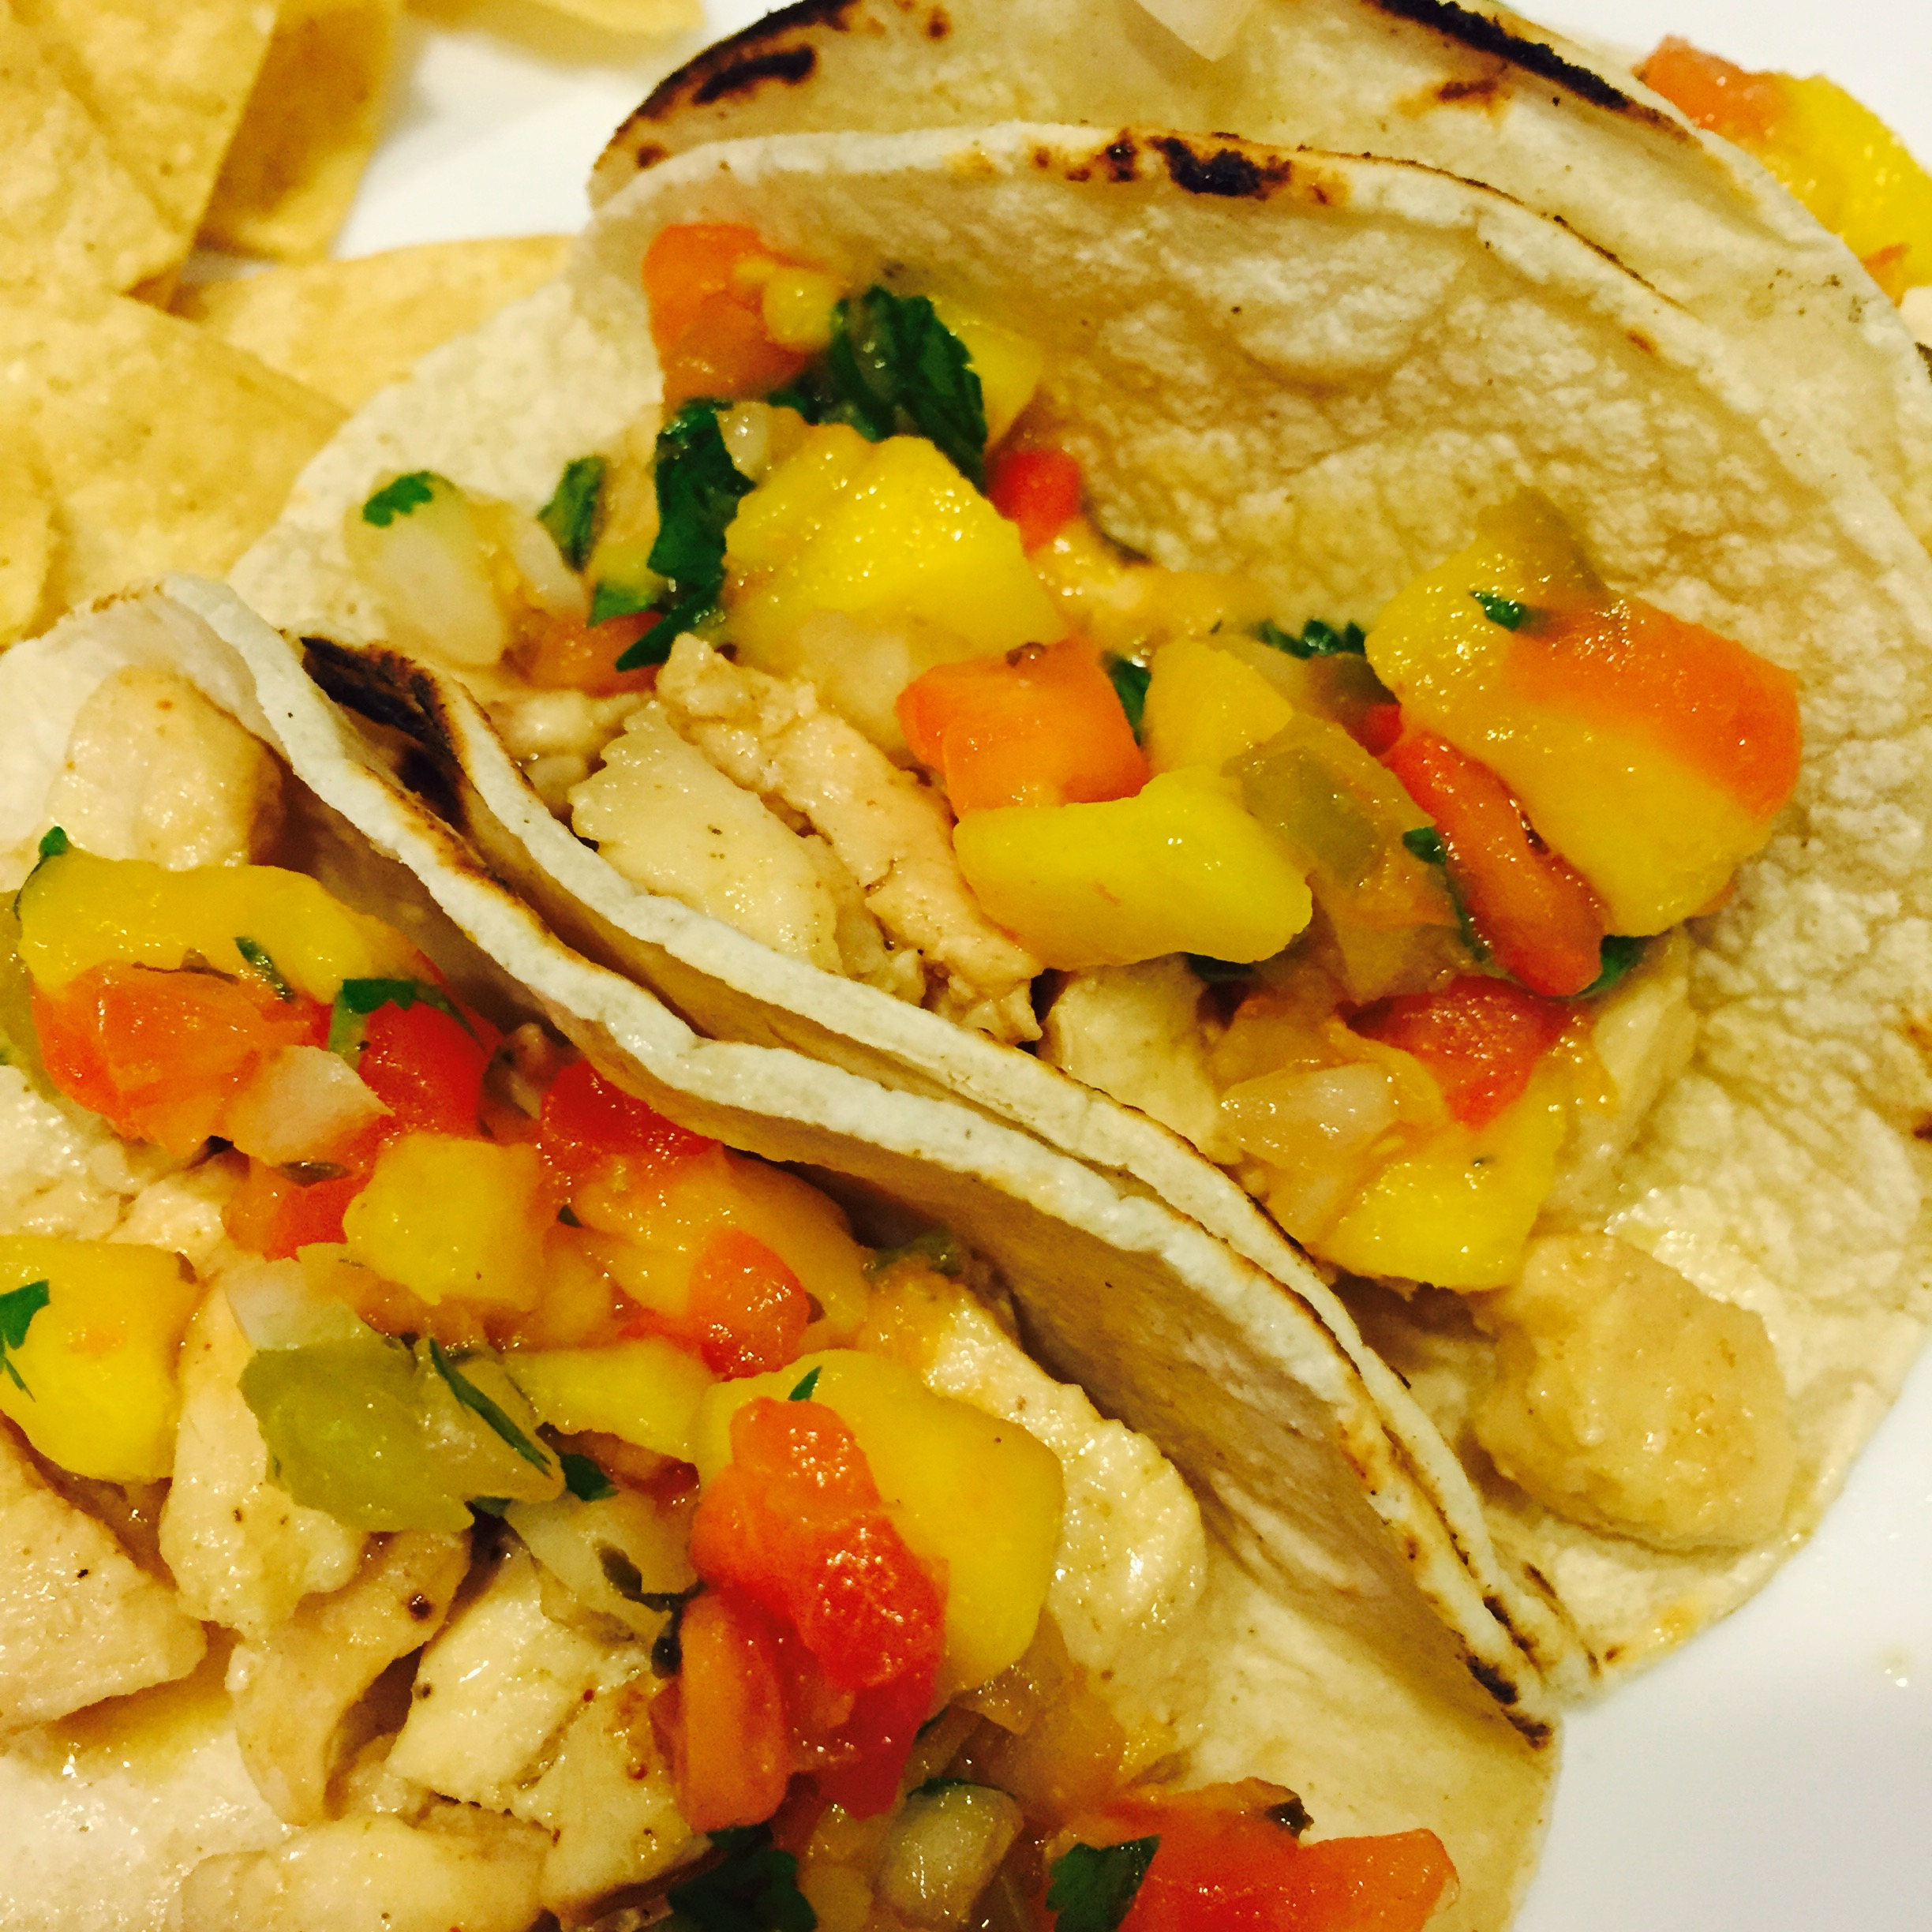 Chicken Tacos Topped With Mango Salsa